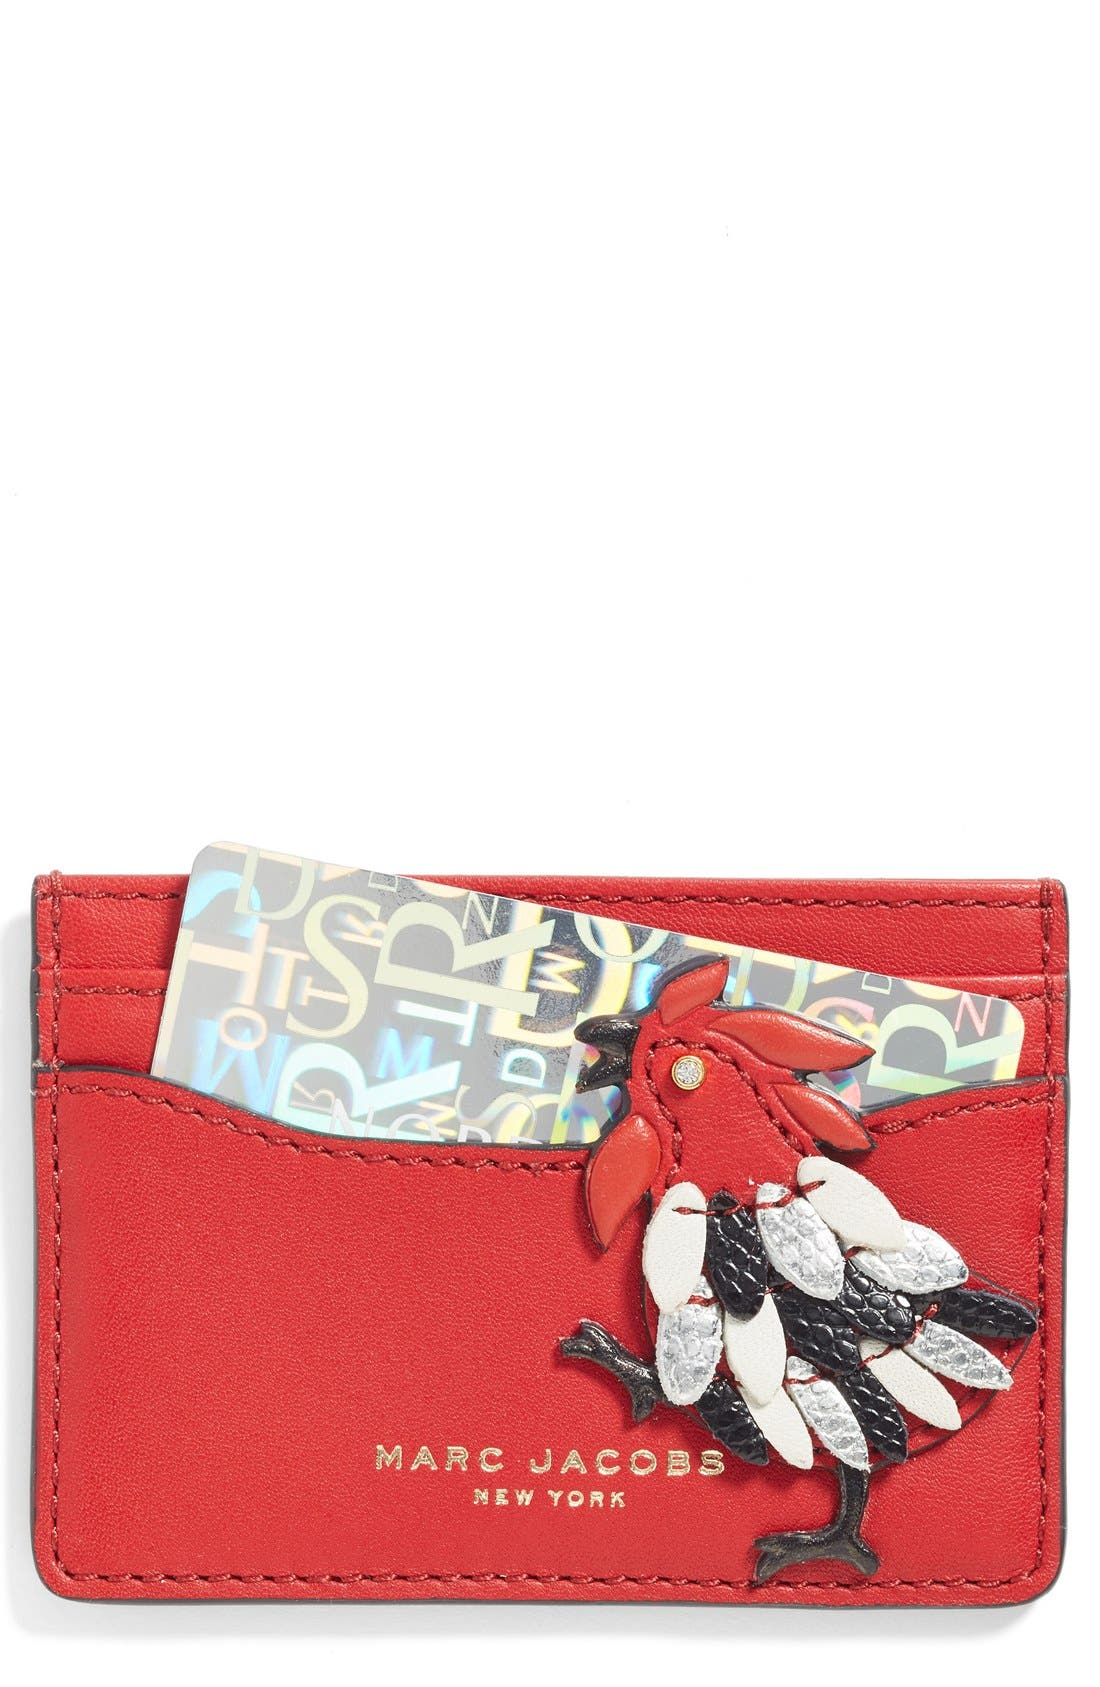 Rooster Leather Card Case,                             Main thumbnail 1, color,                             647